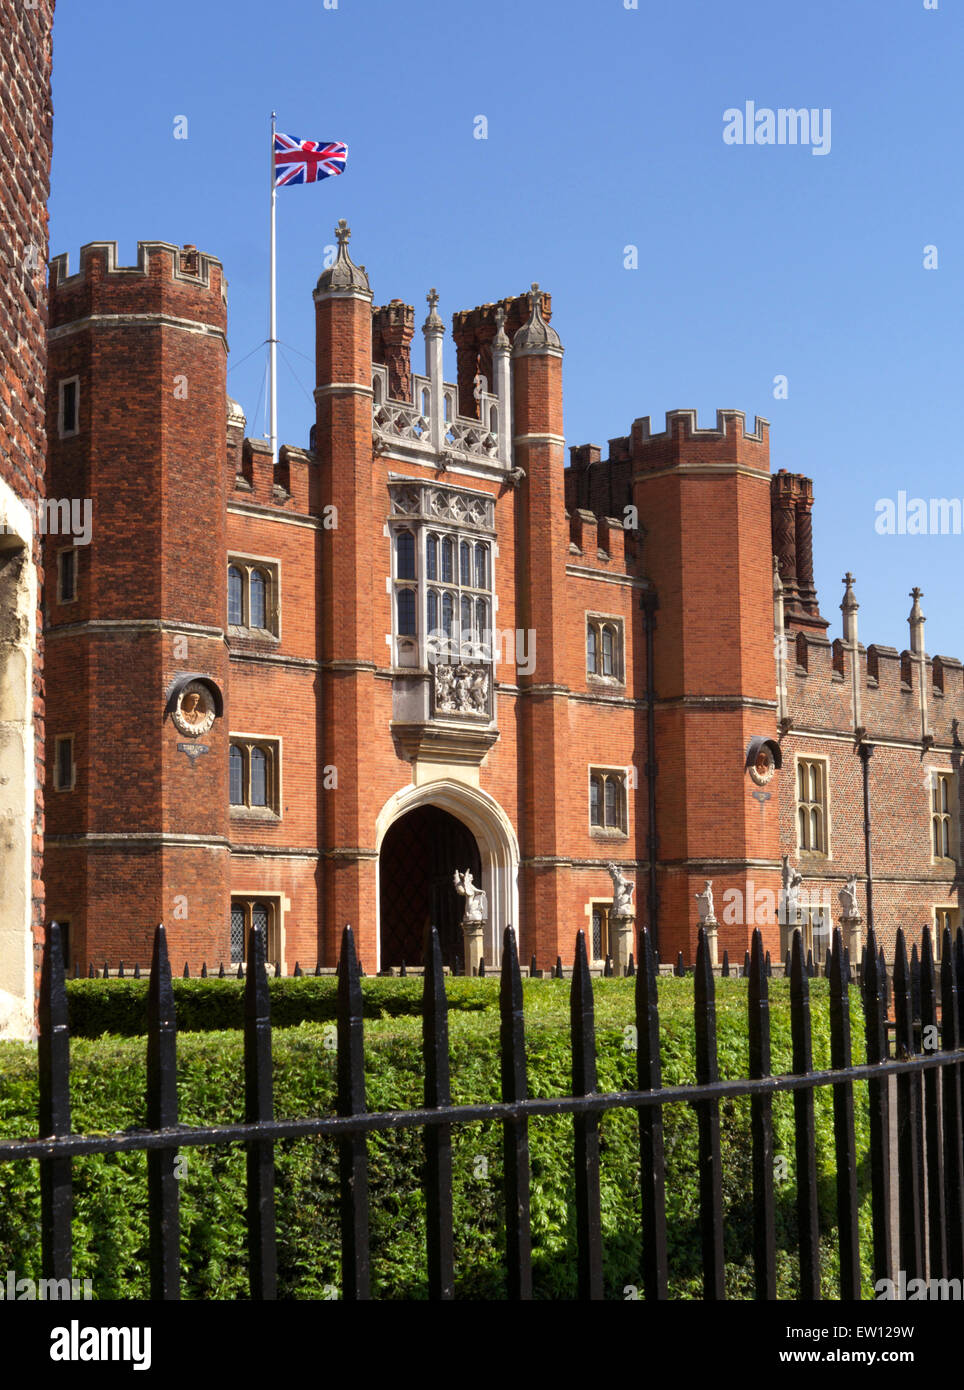 Entrance to Hampton Court Palace a royal palace in the London Borough of Richmond upon Thames Greater London Surrey - Stock Image